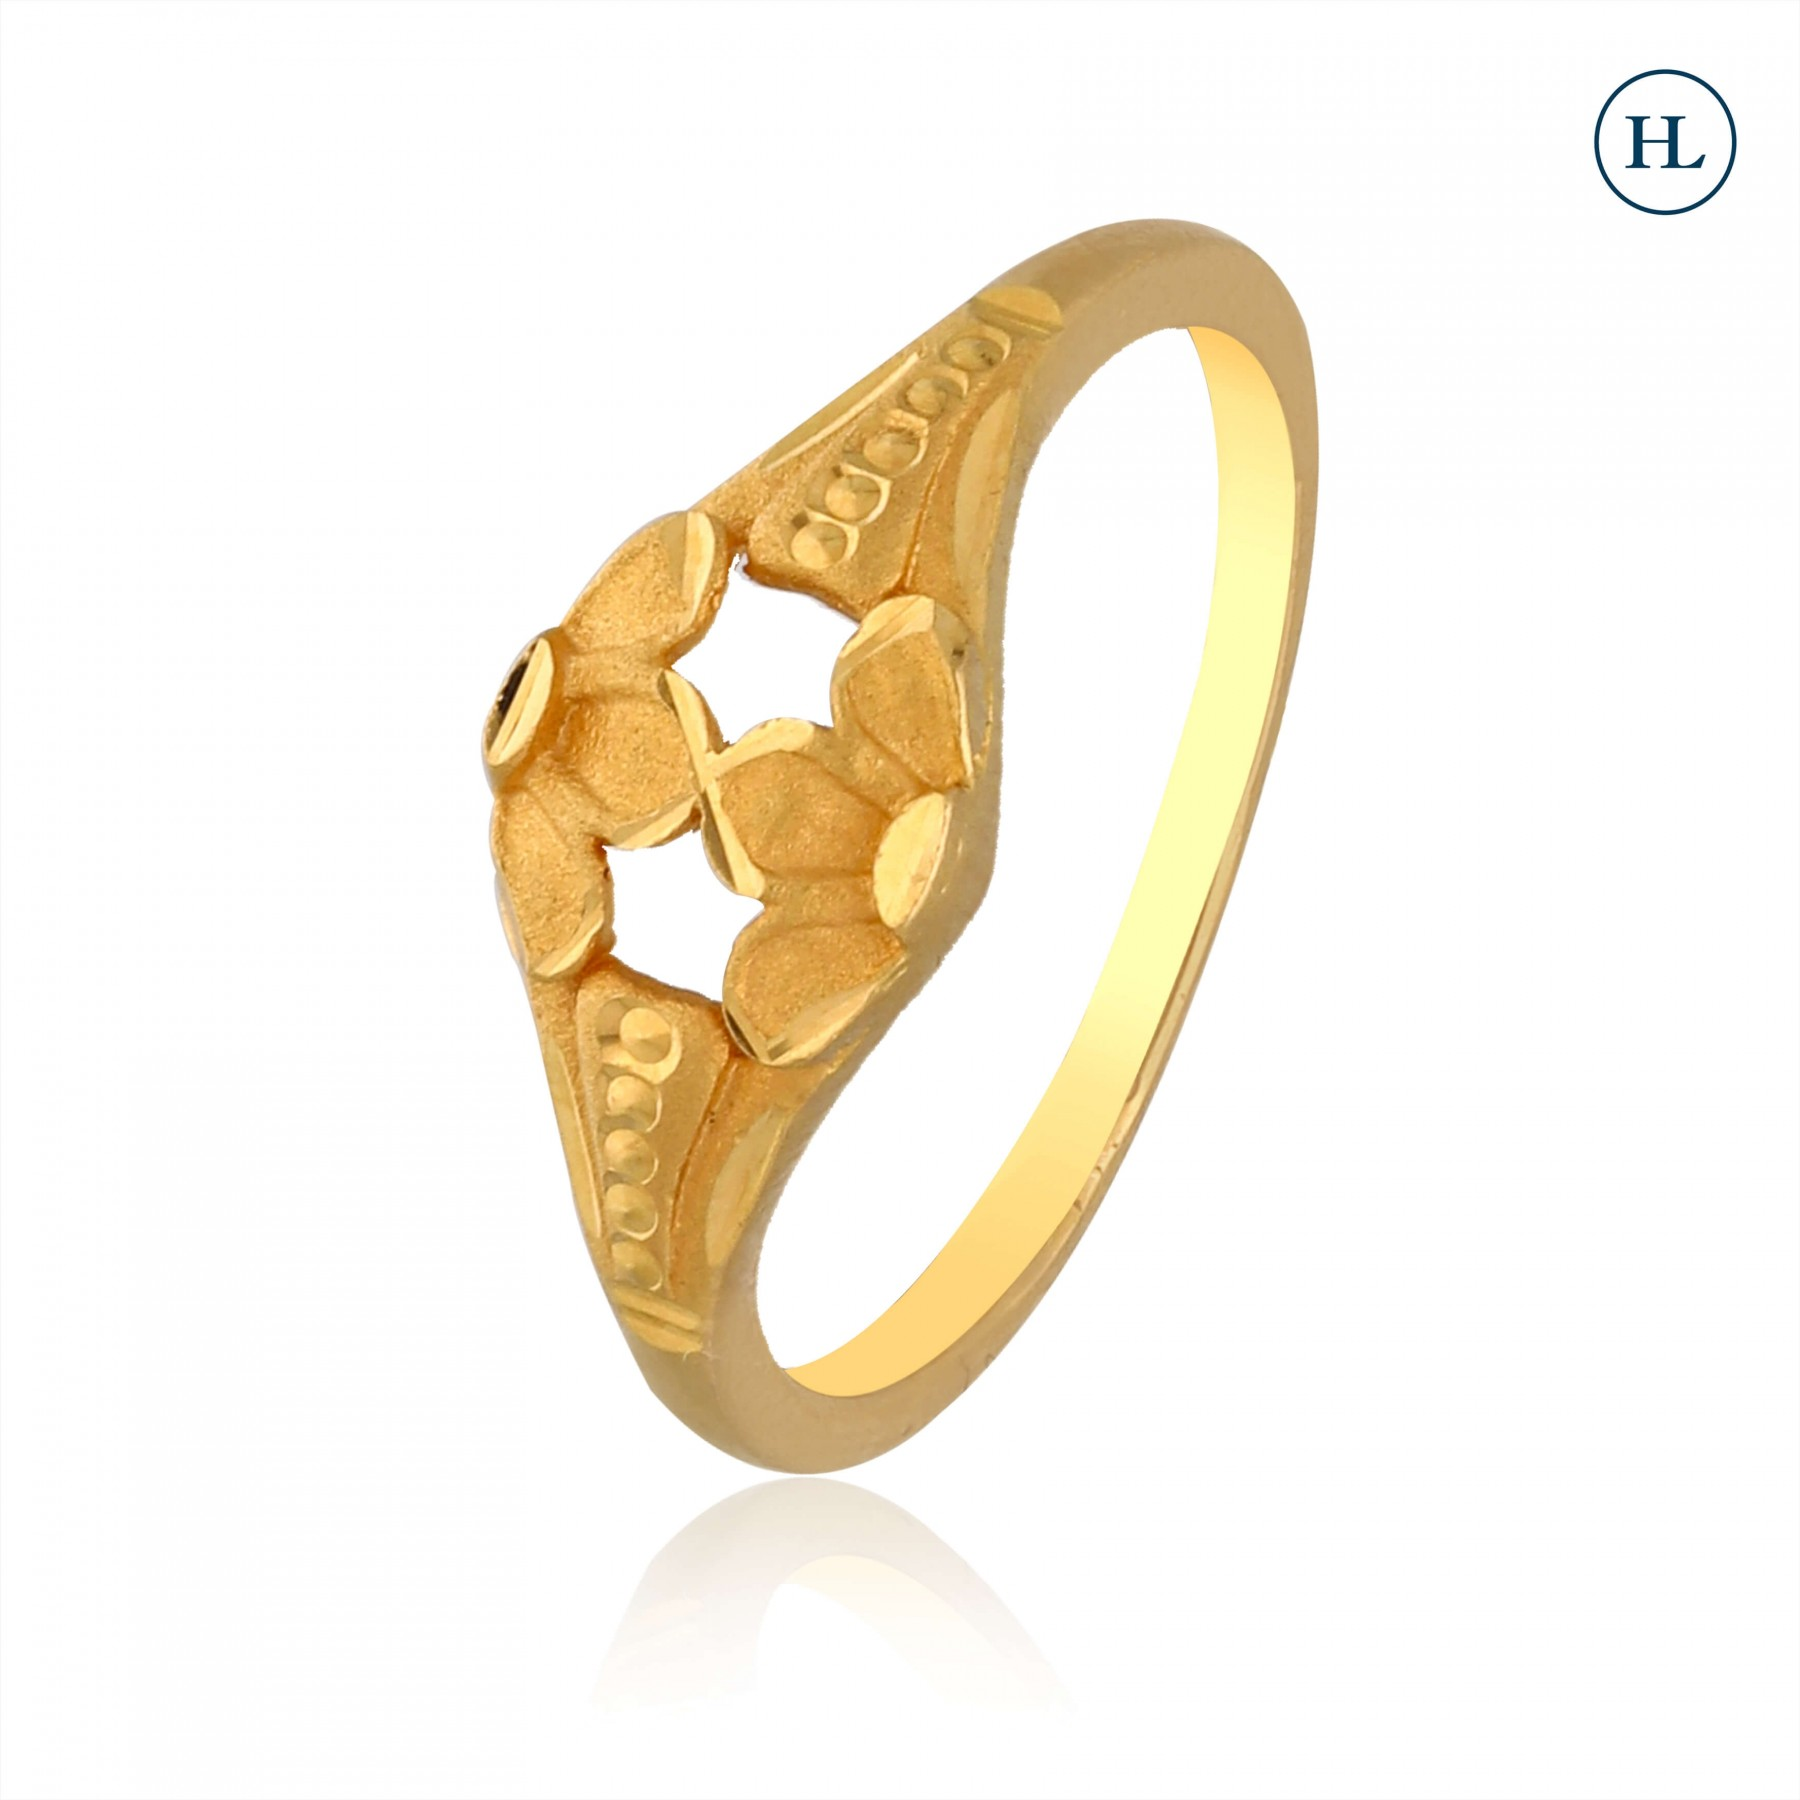 Gold Crafting Ring